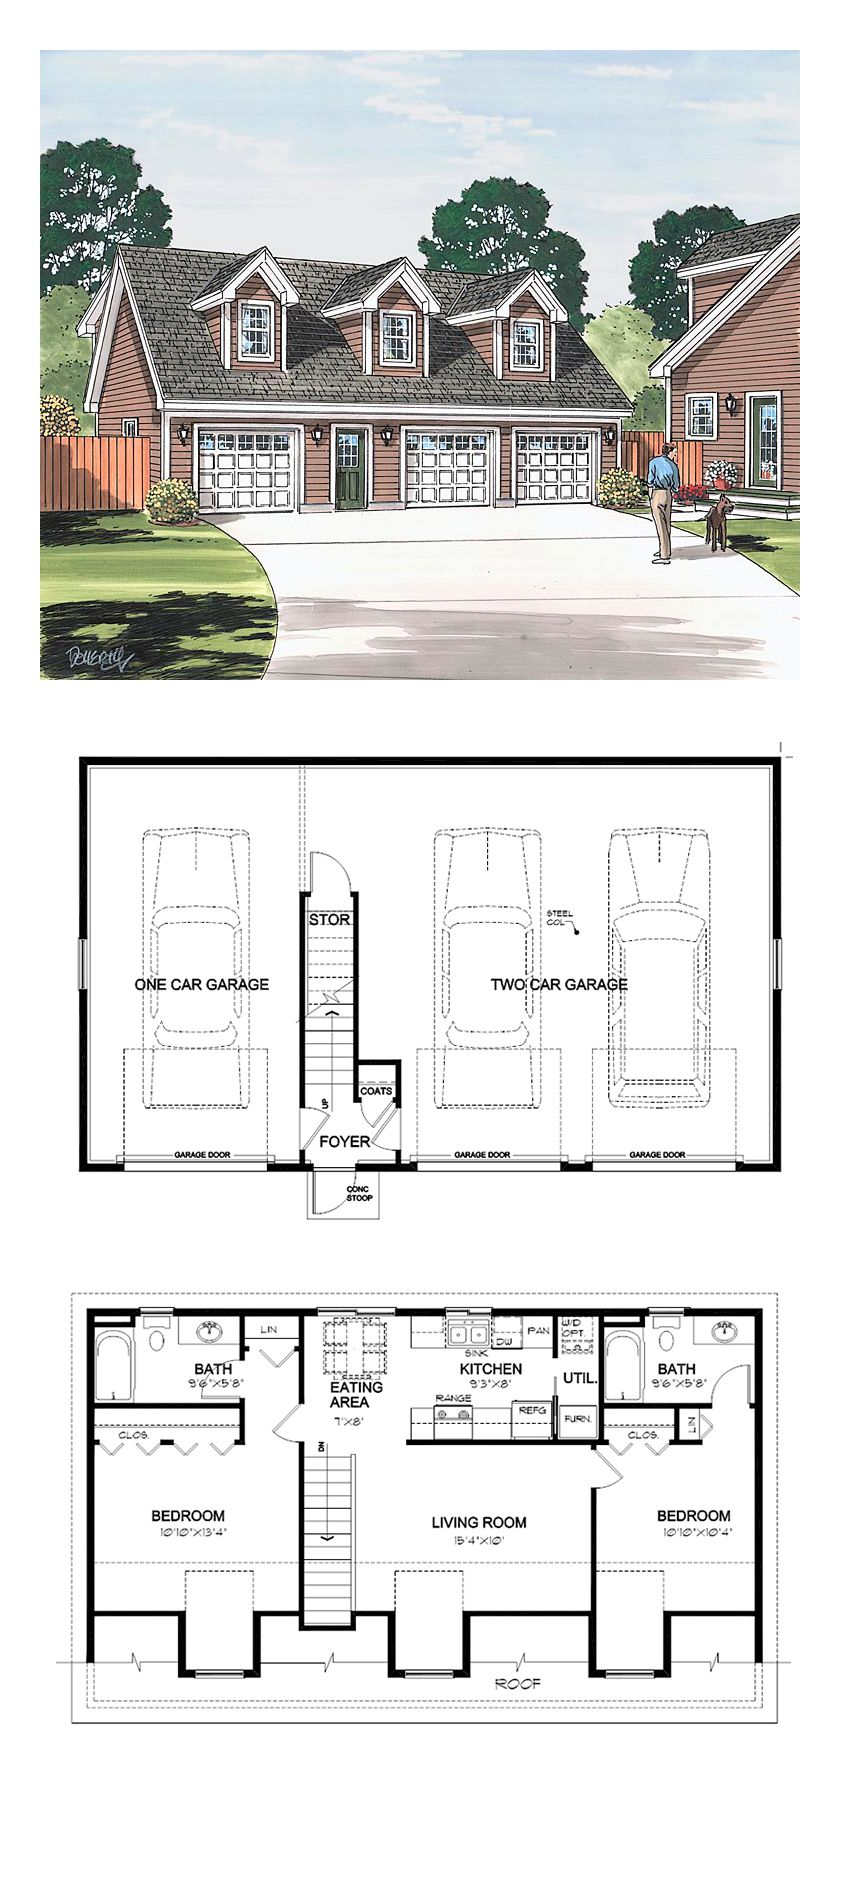 Garage apartment plan 30032 total living area 887 sq for Appartment plans